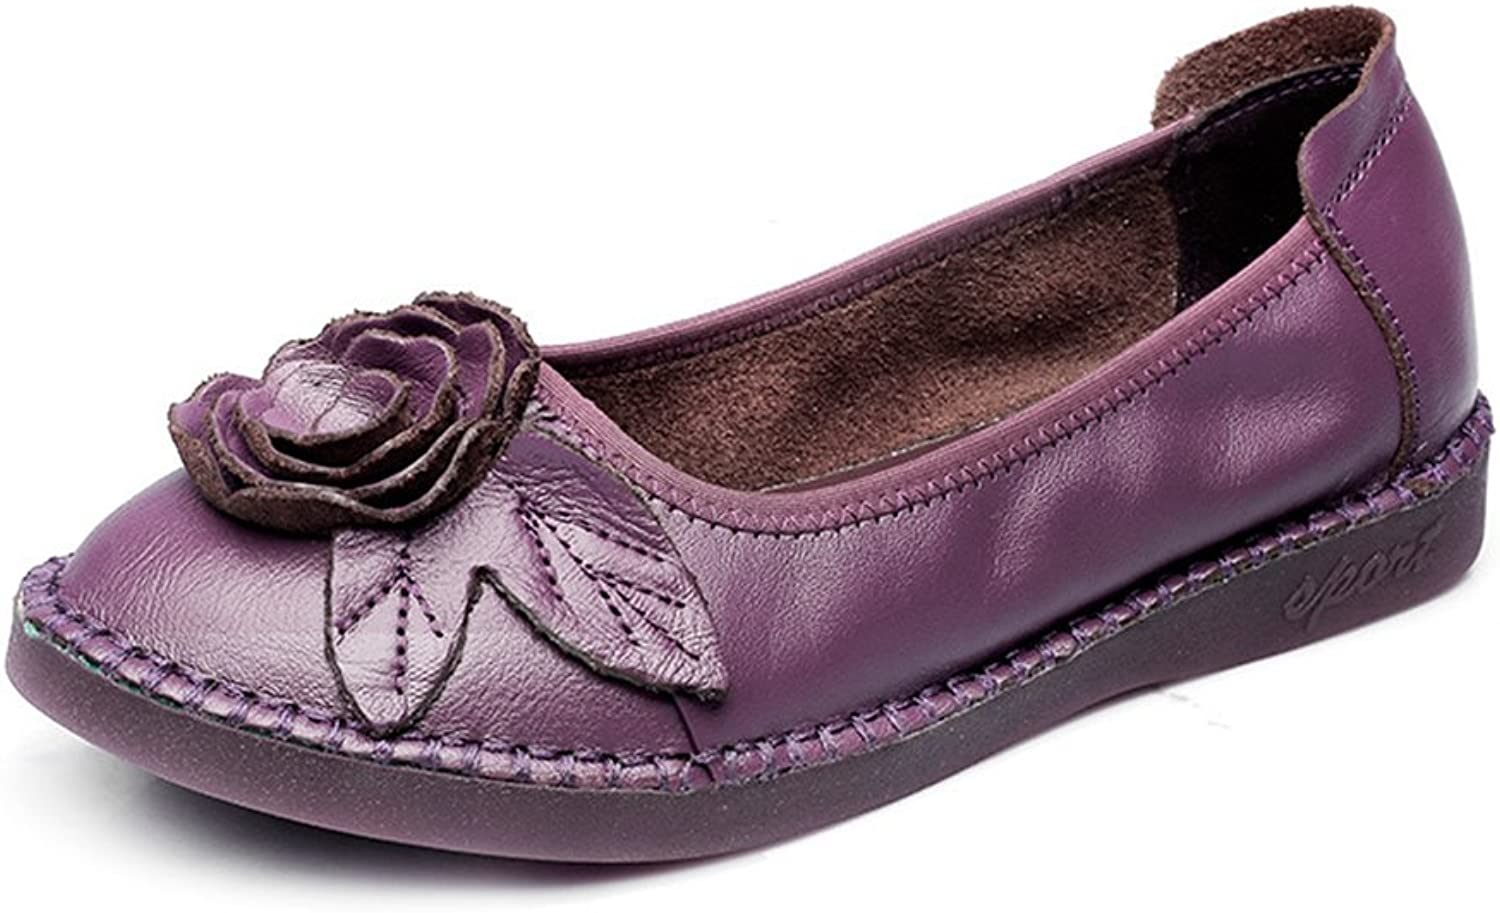 Btrada Women's Flower Slip On Loafers shoes Round Toe Casual Driving Moccasins Flat Ballet Boat shoes